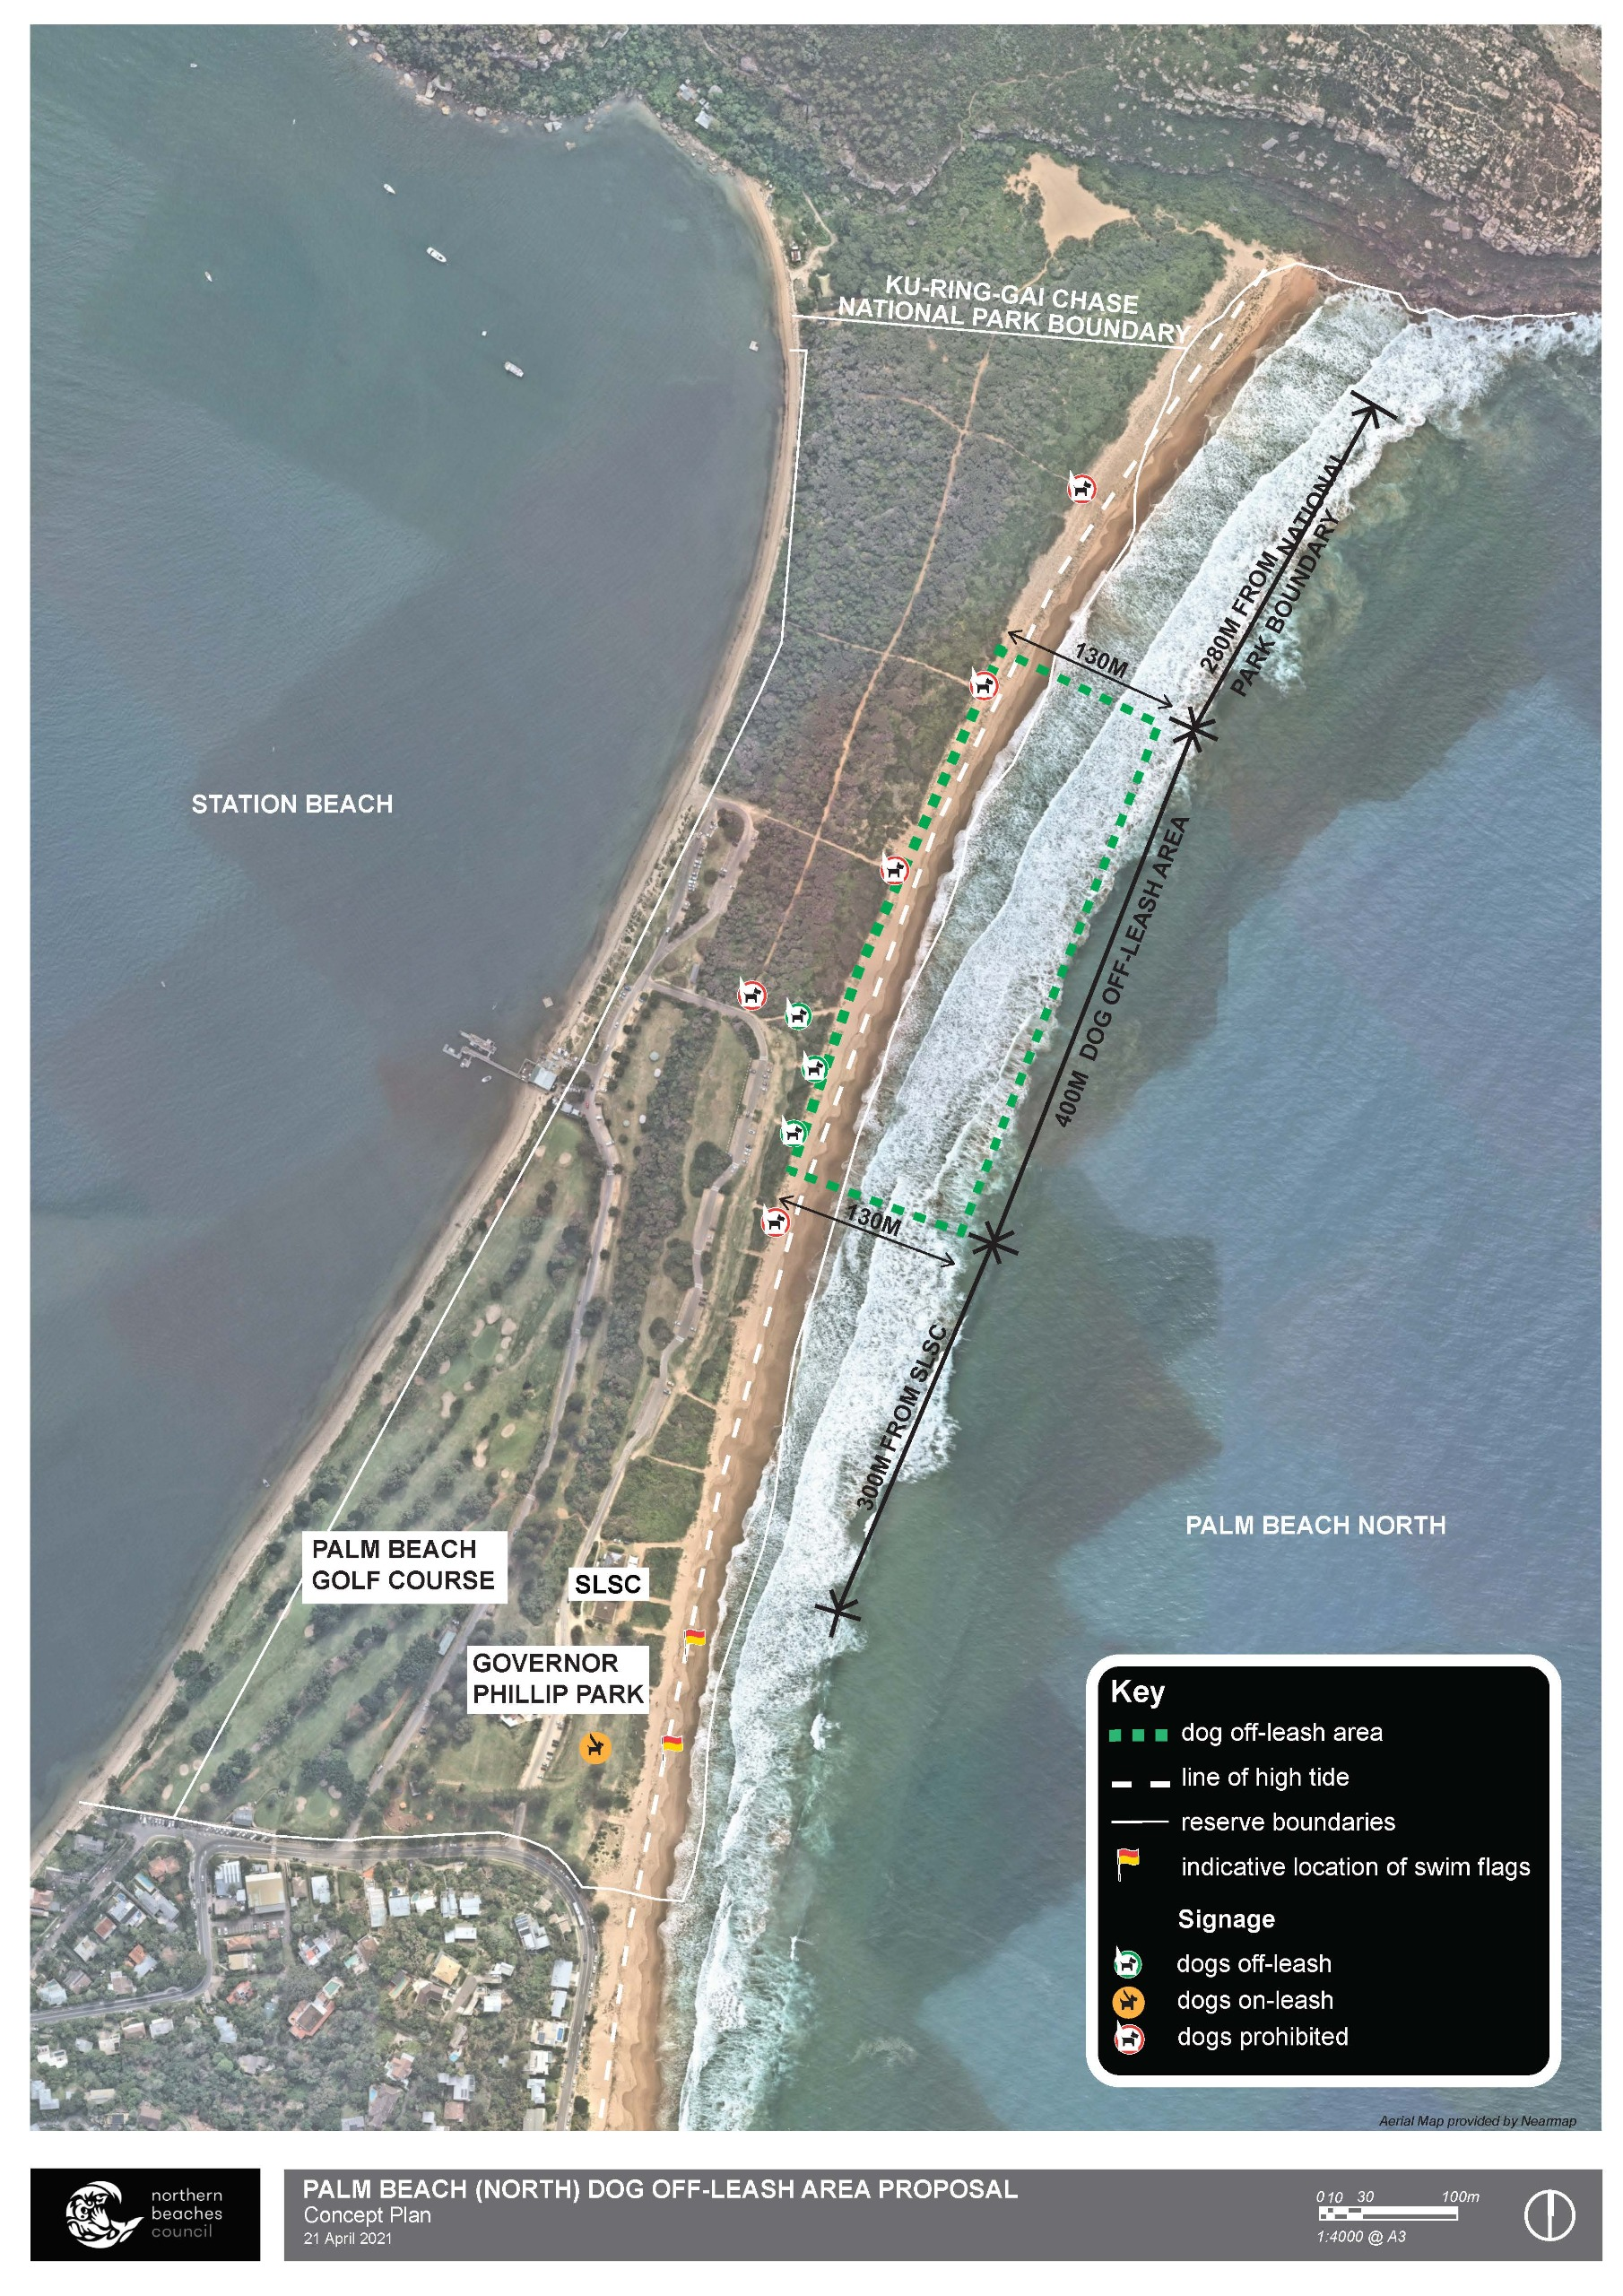 Palm Beach (north) Proposed Dog Off-Leash Area Concept Plan April 2021